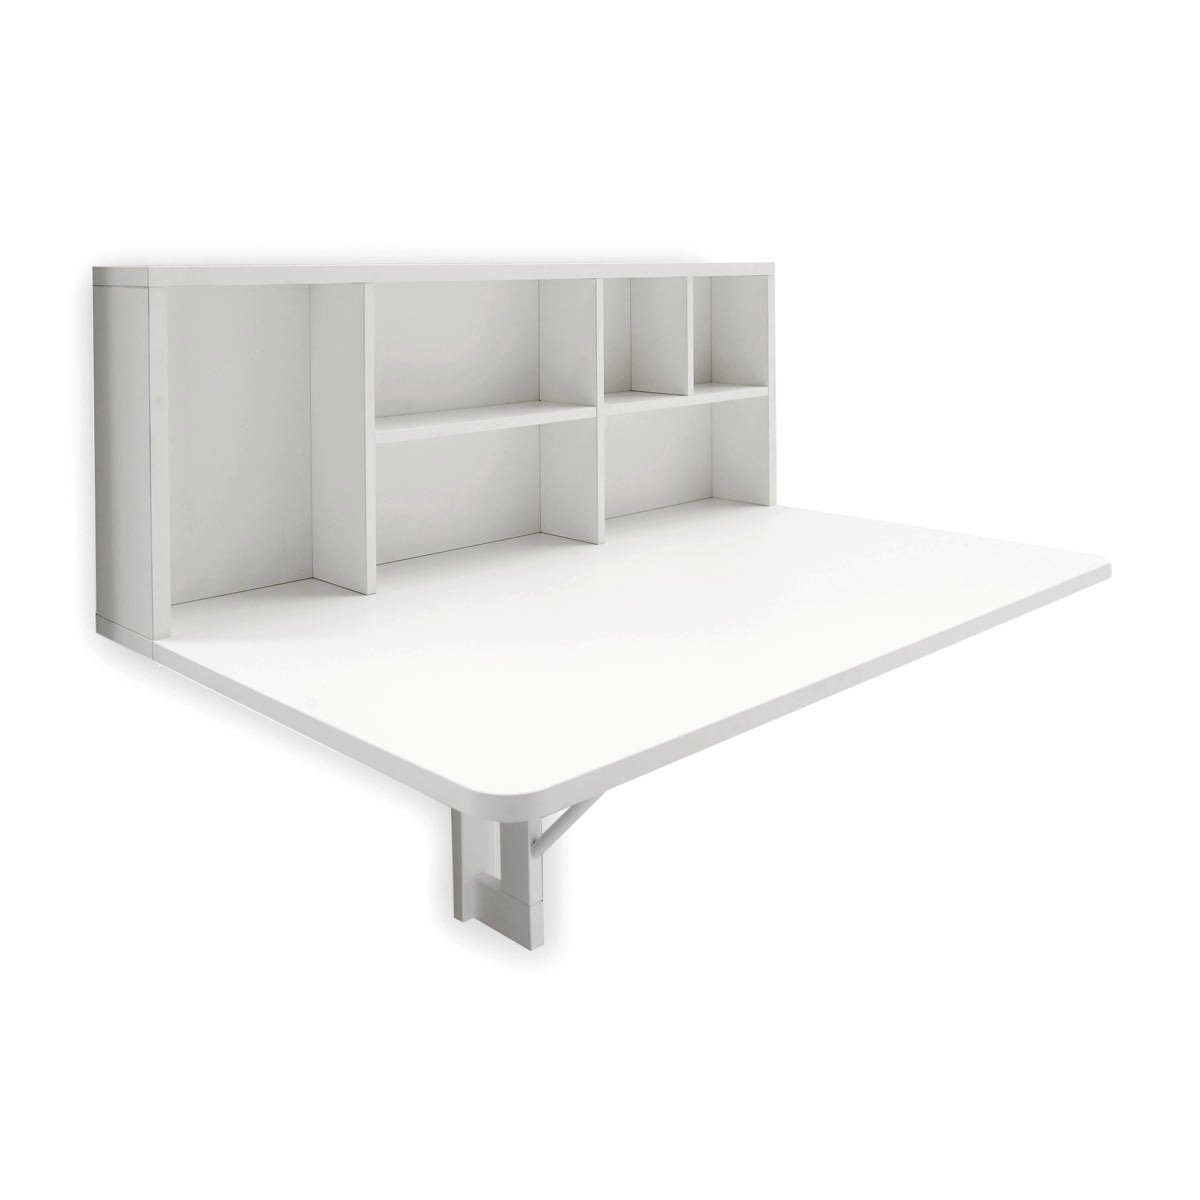 Table spacebox meubles et atmosph re for Table console rabattable